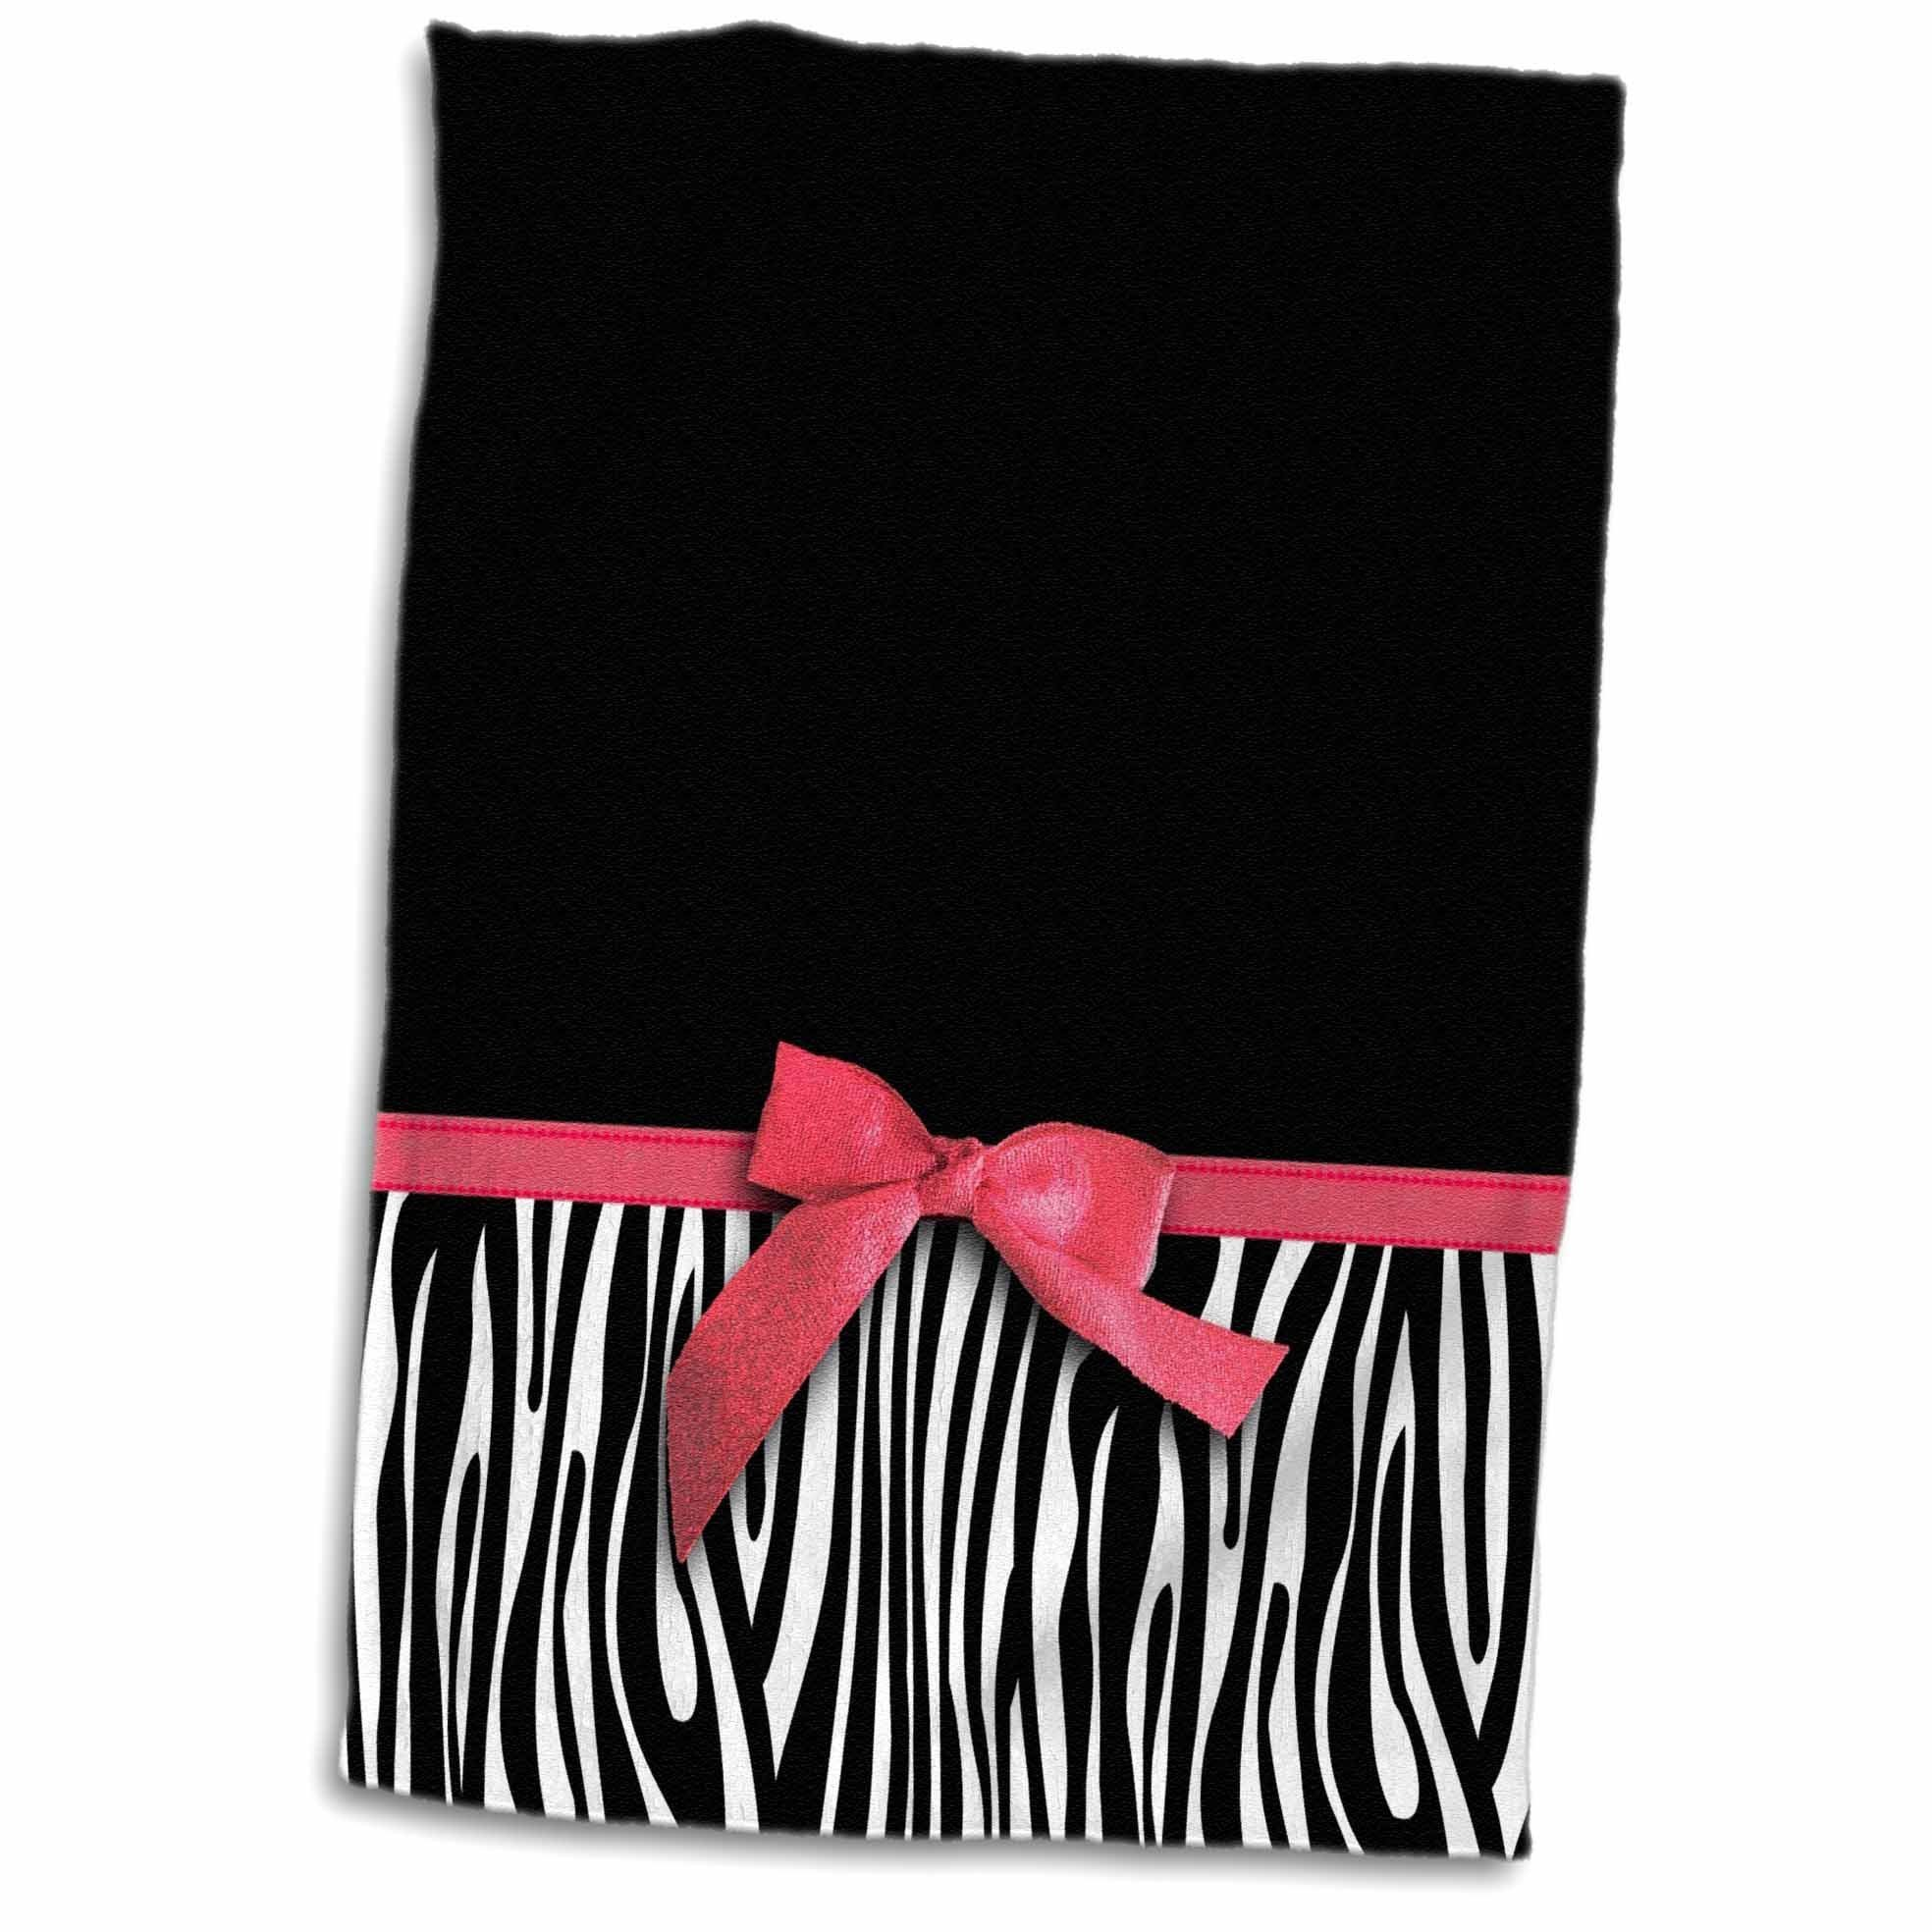 3dRose 3D Rose Black and White Zebra Stripes with Faux Red Ribbon and Bow Graphic-Stylish Classy Animal Print Hand/Sports Towel, 15 x 22, Multicolor